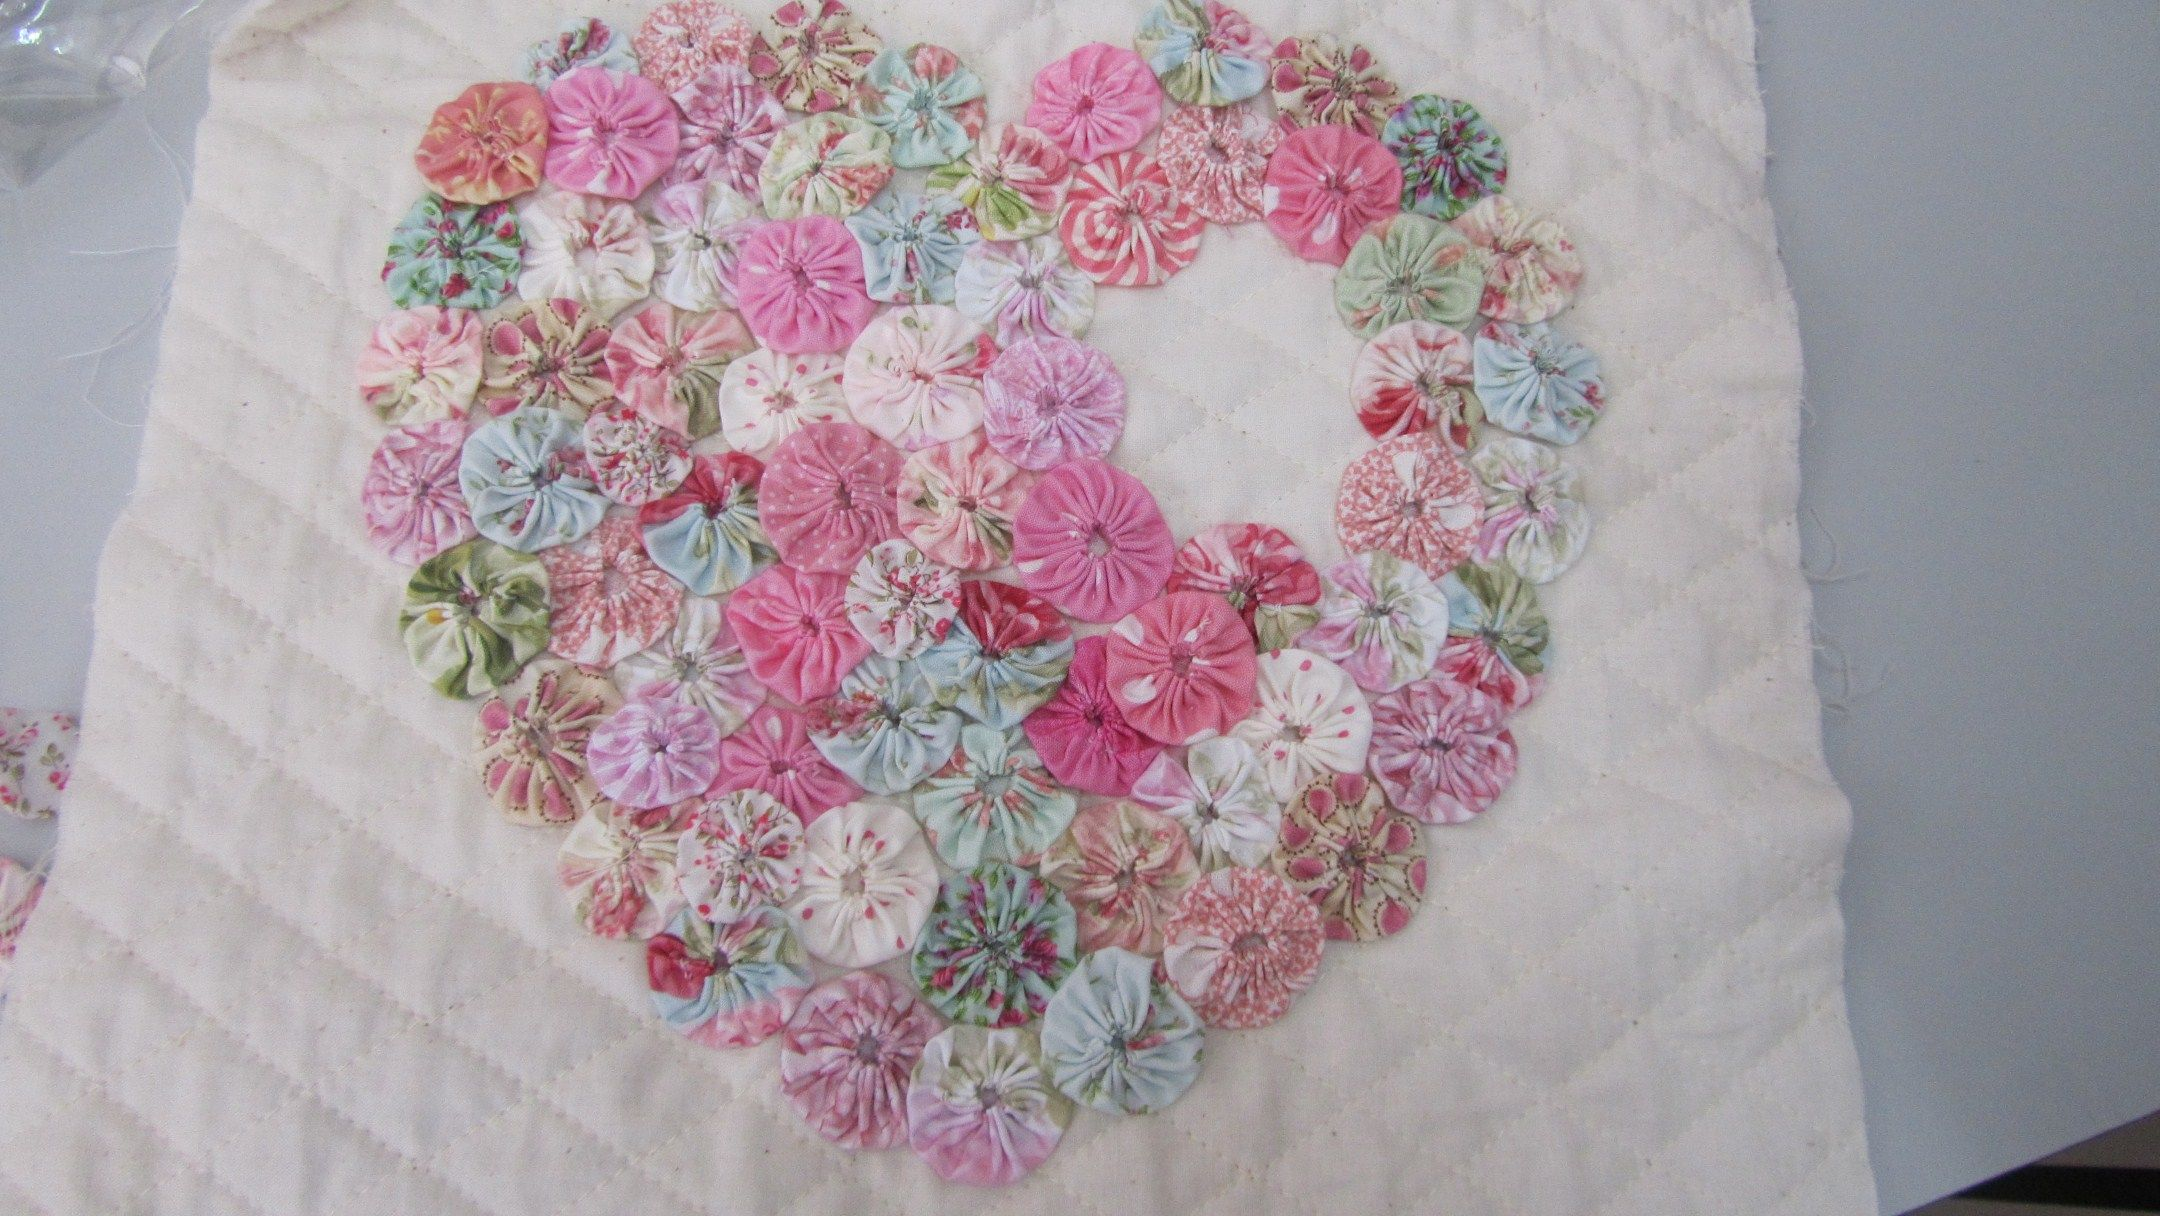 Sewing a shabby pink heart